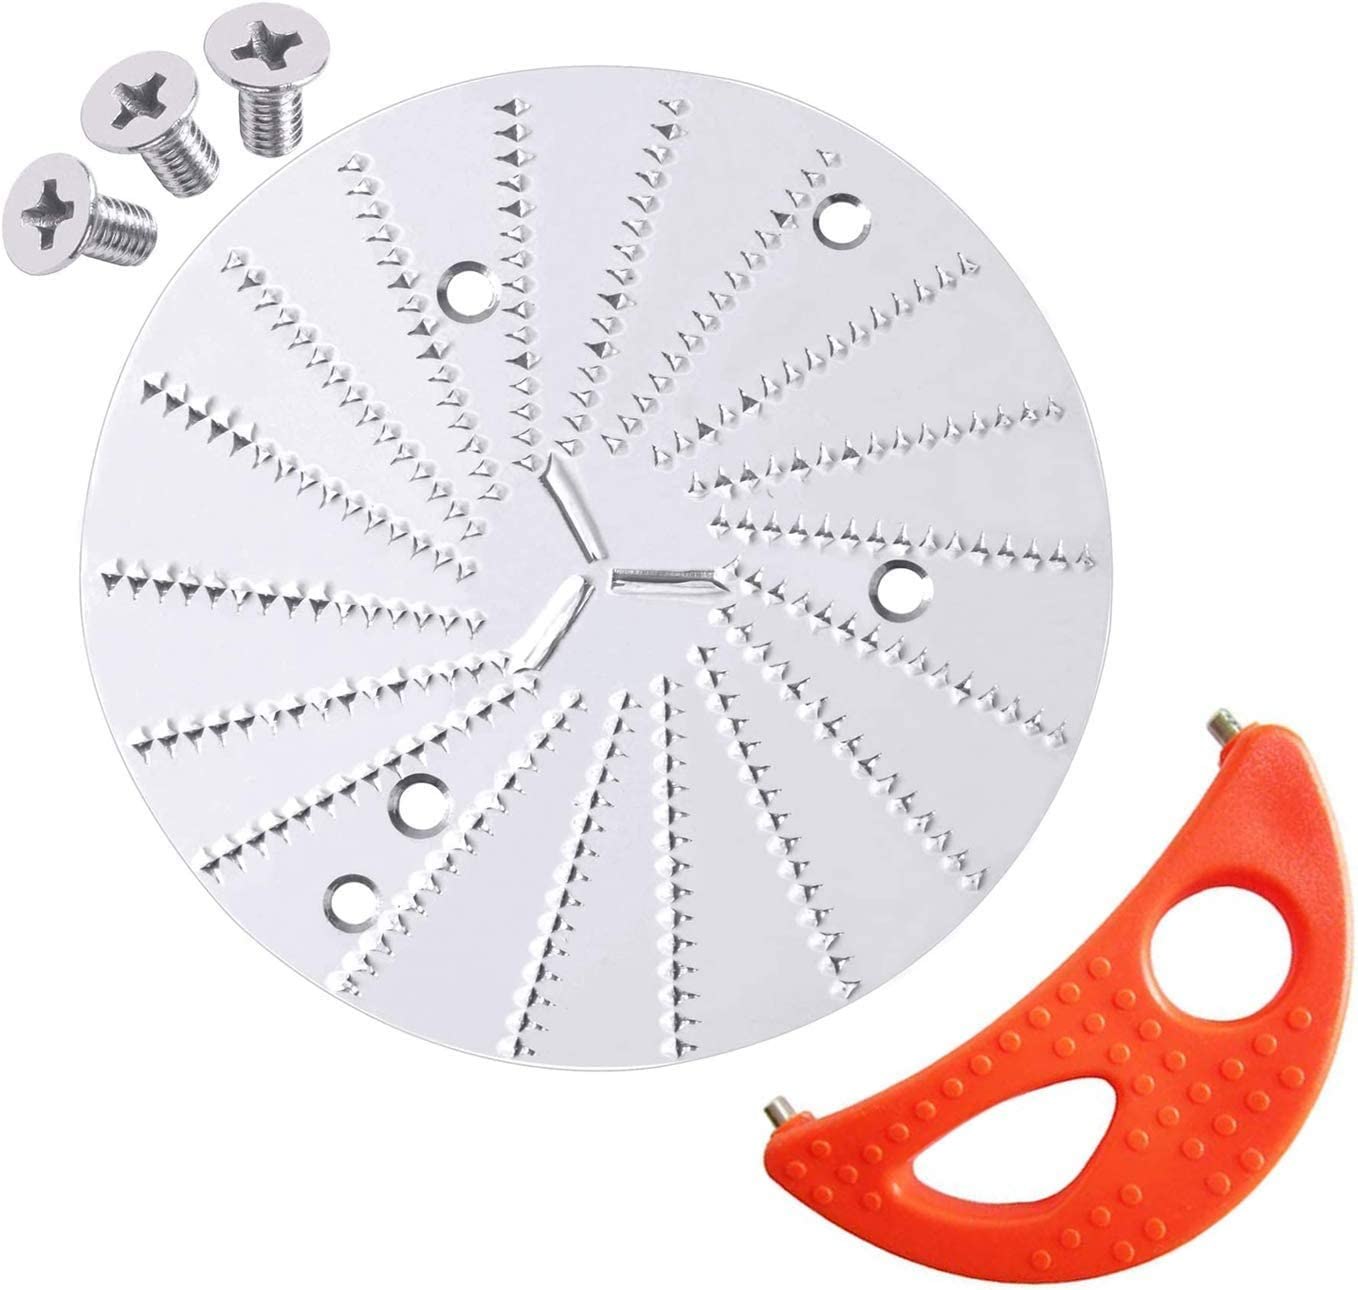 Replacement Blade with Crescent Tool Compatible with Jack Lalanne Power Juicer,Juicer Repalcement Parts